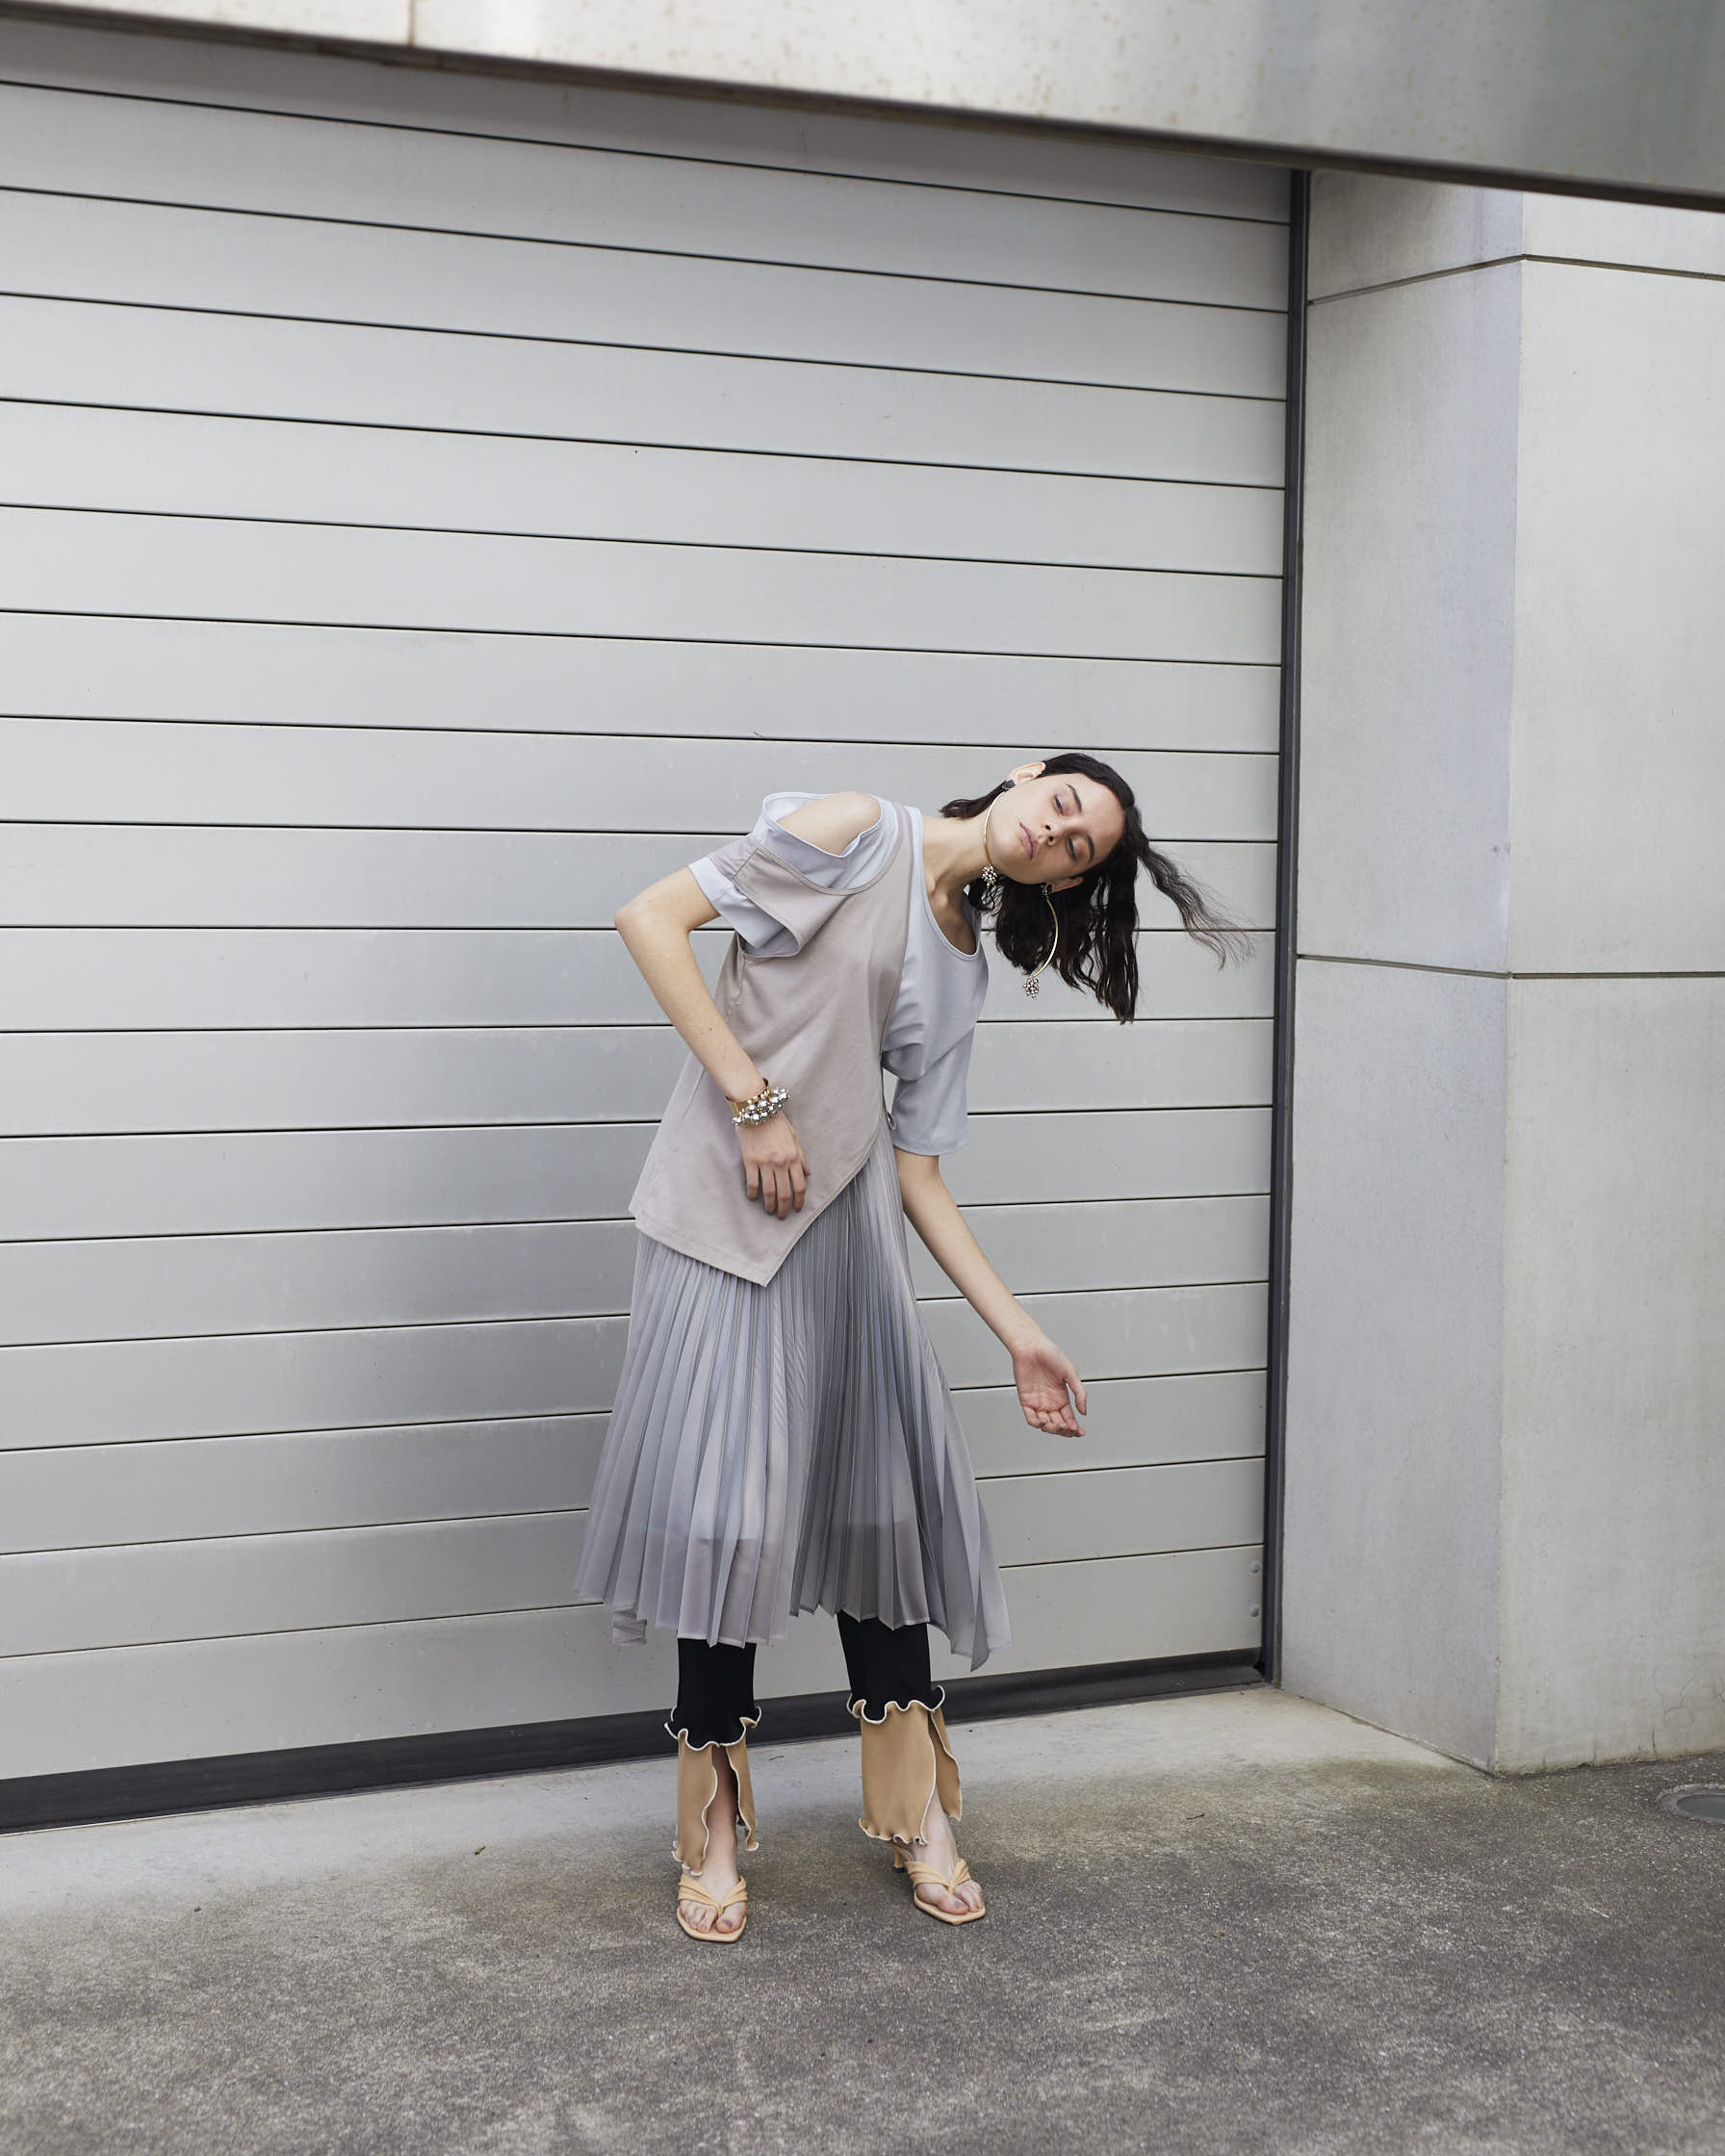 MURRAL spring / summer 2020 collection